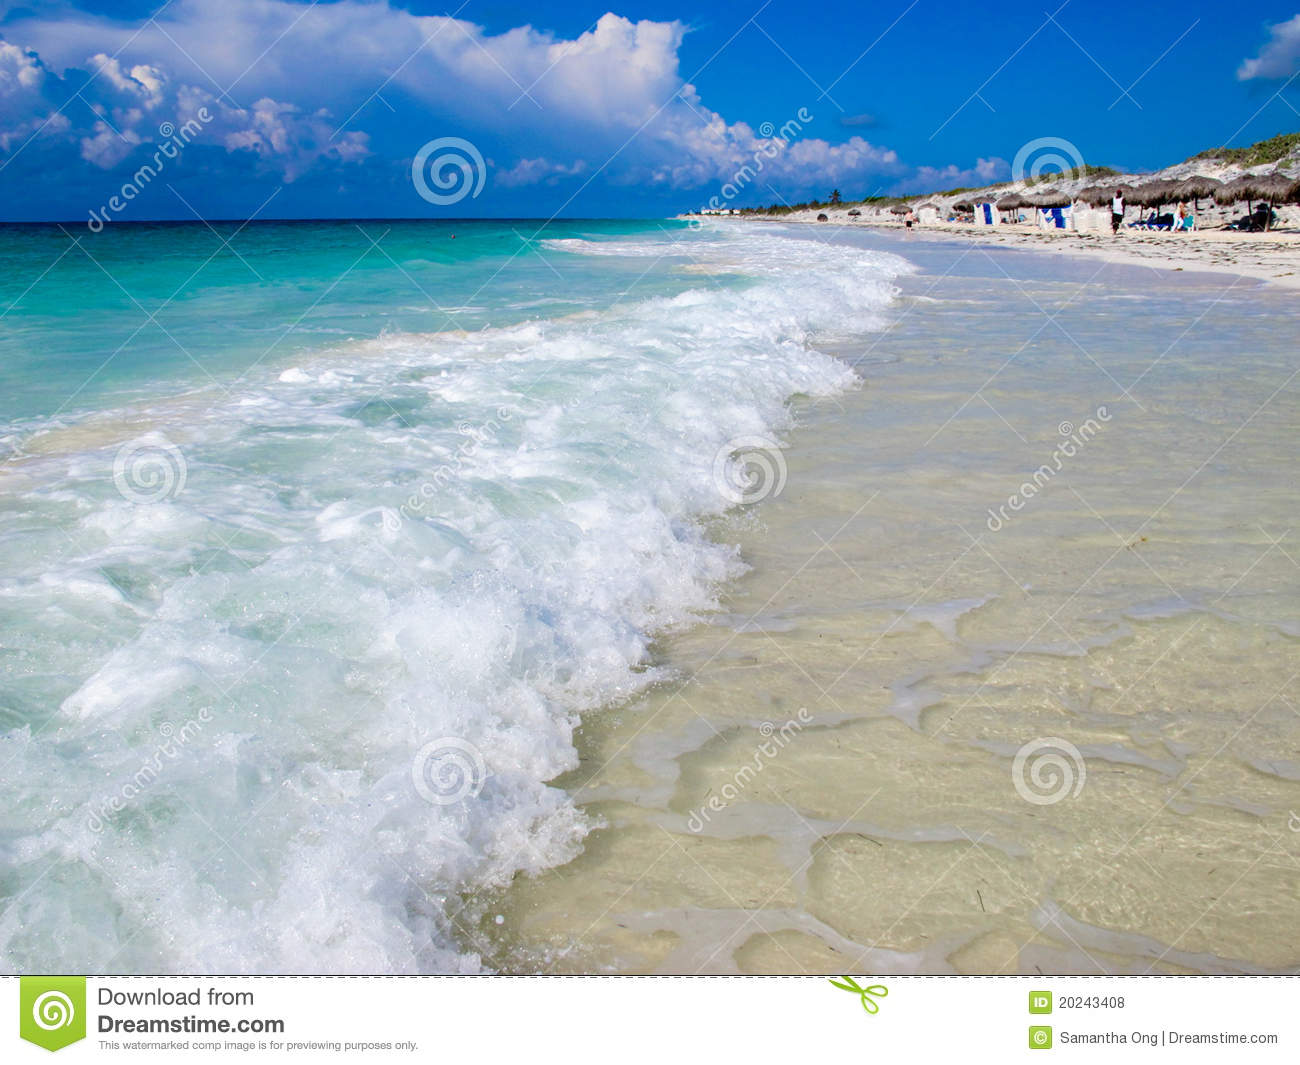 Playa Blanca (Beach), Cayo Largo, Cuba Royalty Free Stock Photos.